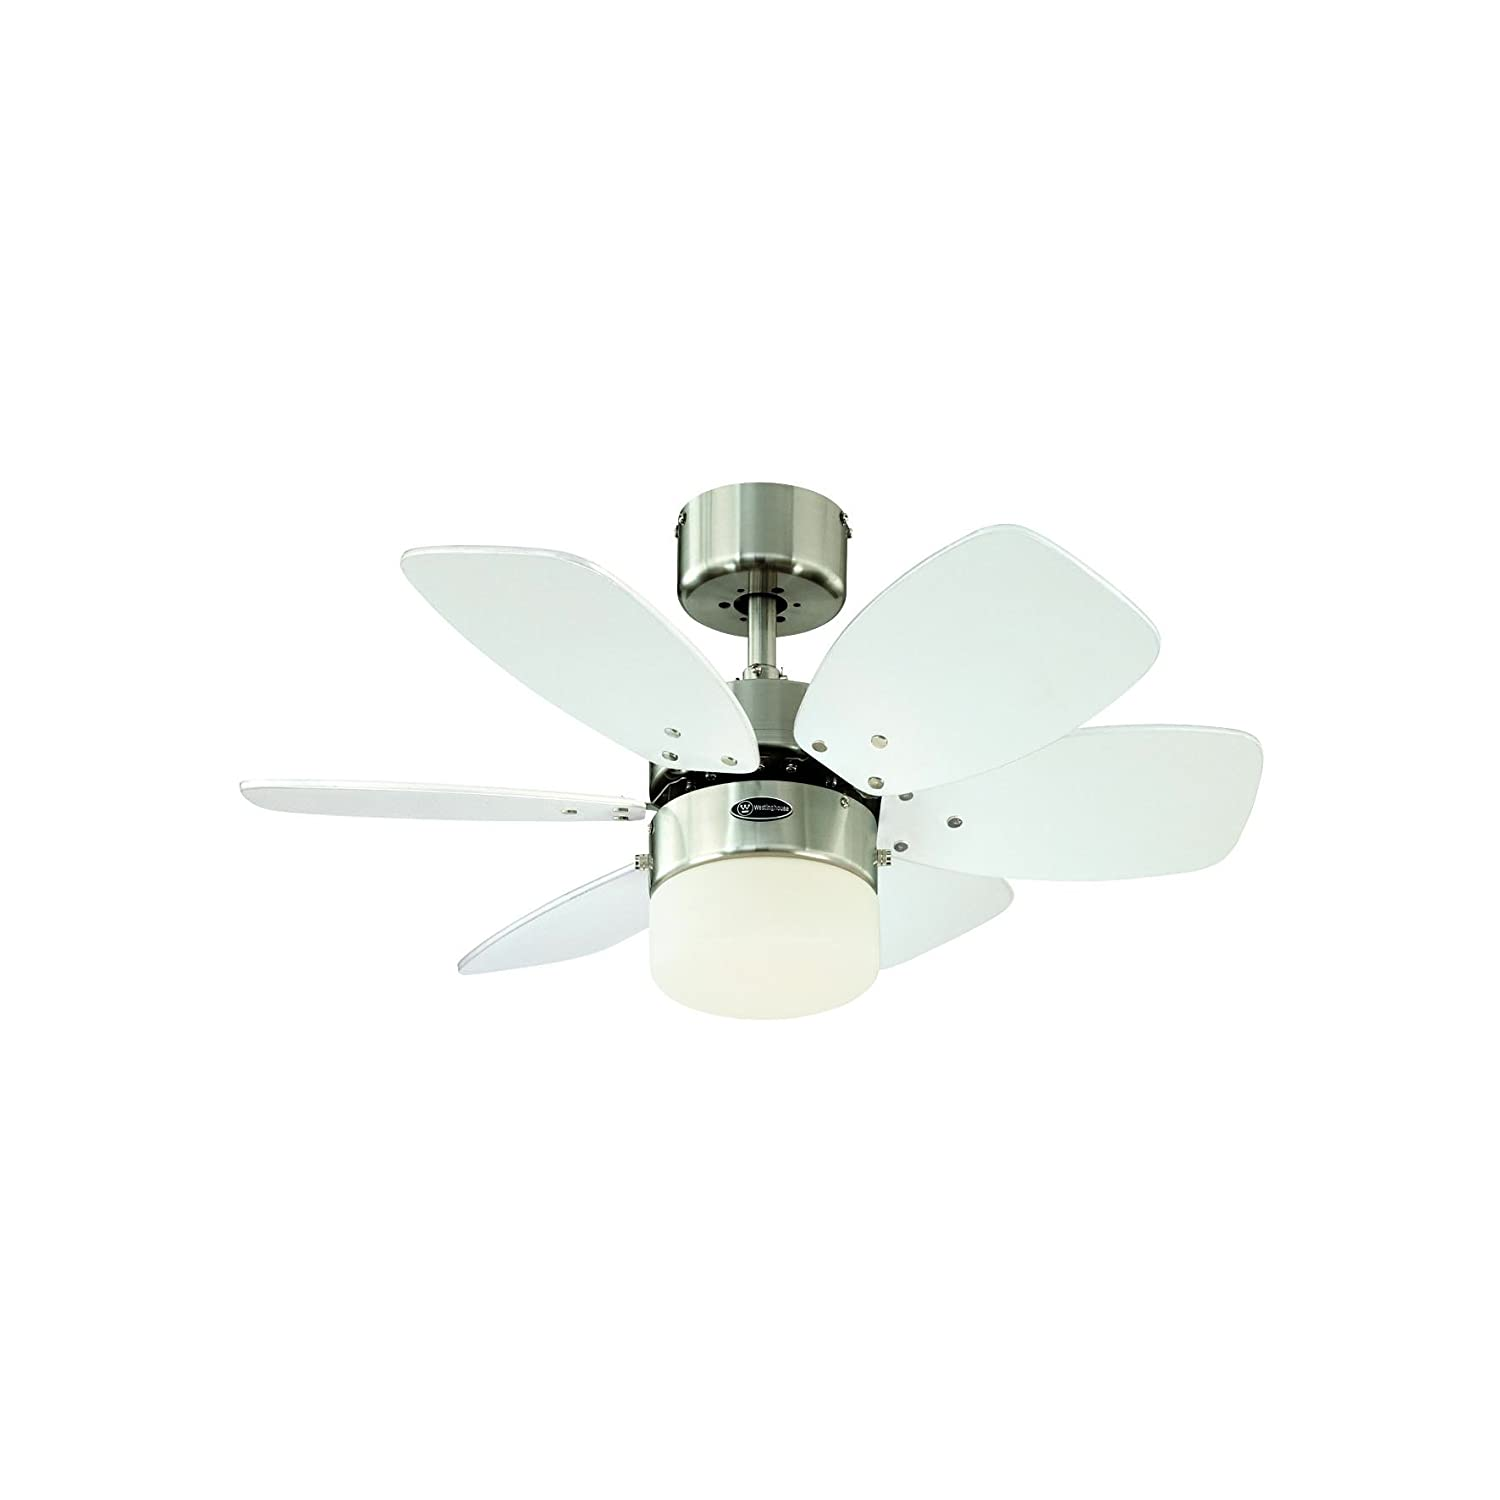 Westinghouse 7878840 Deckenventilator Flora Royale: Amazon.de ...